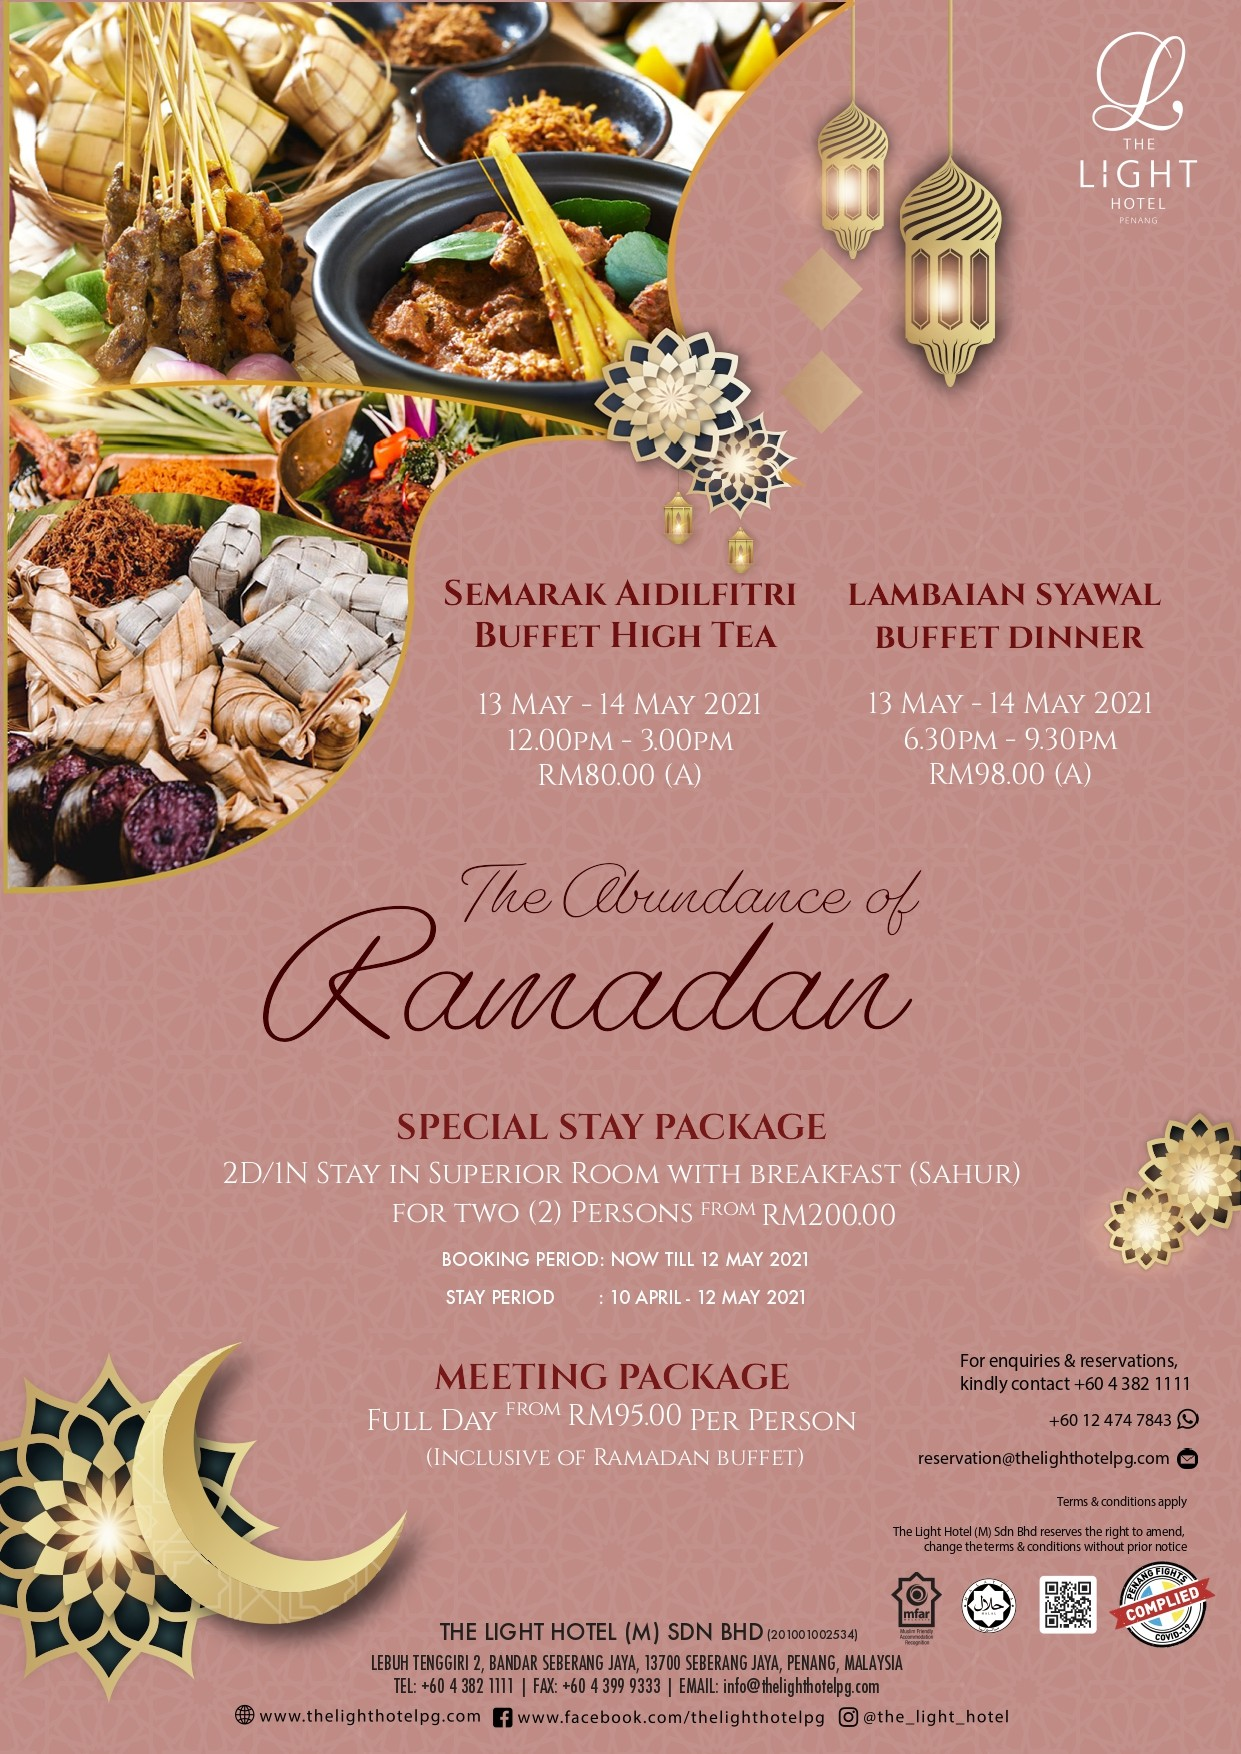 Semarak Aidilfitri Buffet High Tea by The Light Hotel